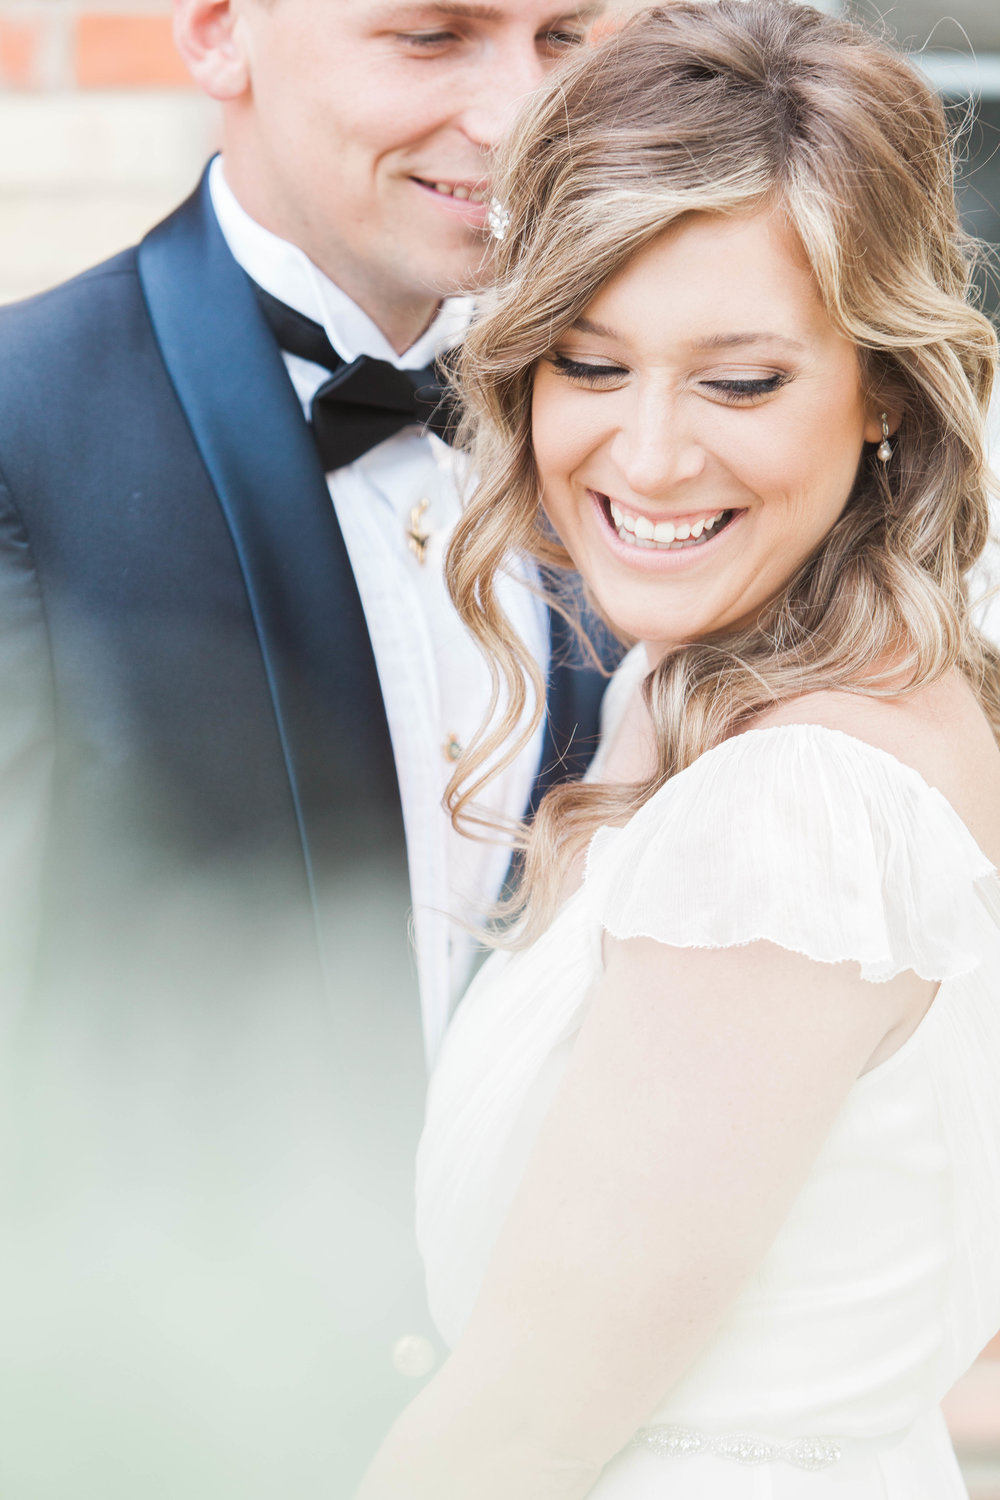 Bride and groom portraits in Southern Ontario